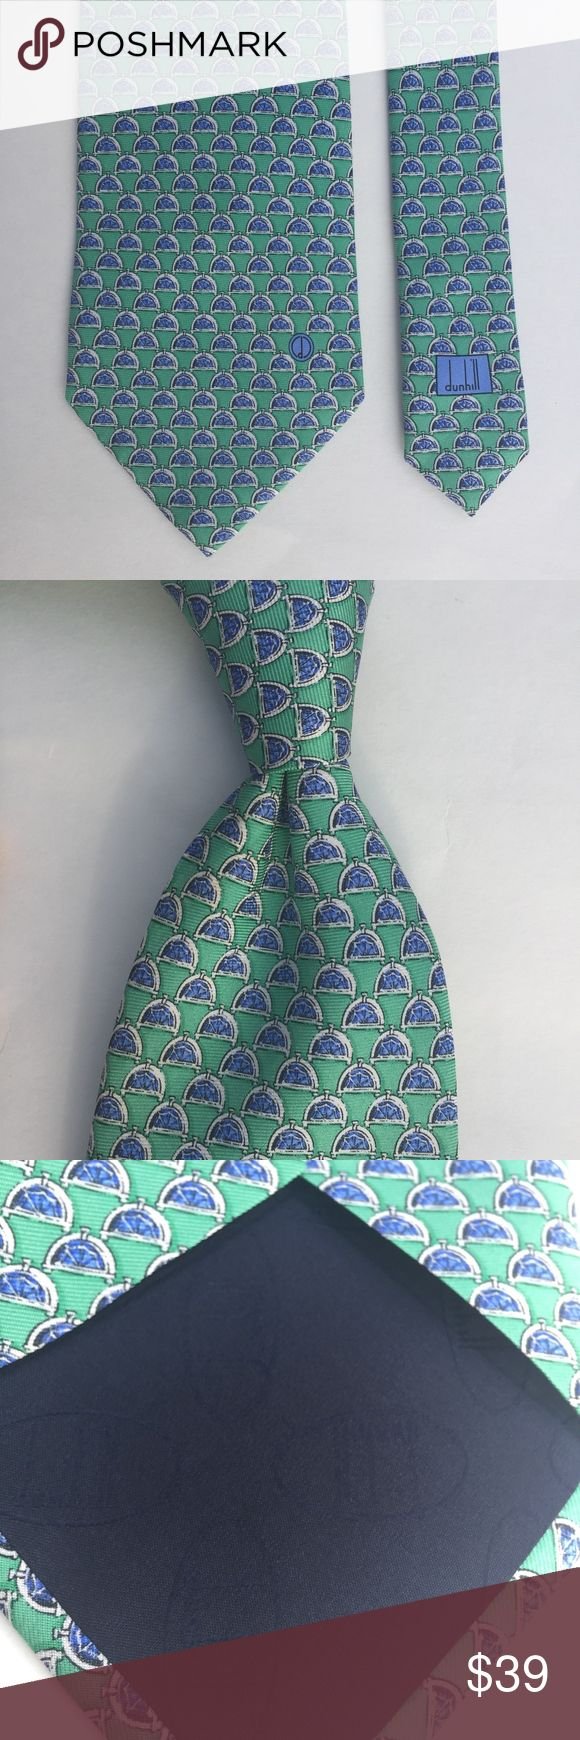 Dunhill 100% Silk Tie by Alfred Dunhill Classic and sophisticated Alfred Dunhill 100% silk neck tie made in Italy. This tie is Preowned and in excellent condition! Dunhill Accessories Ties